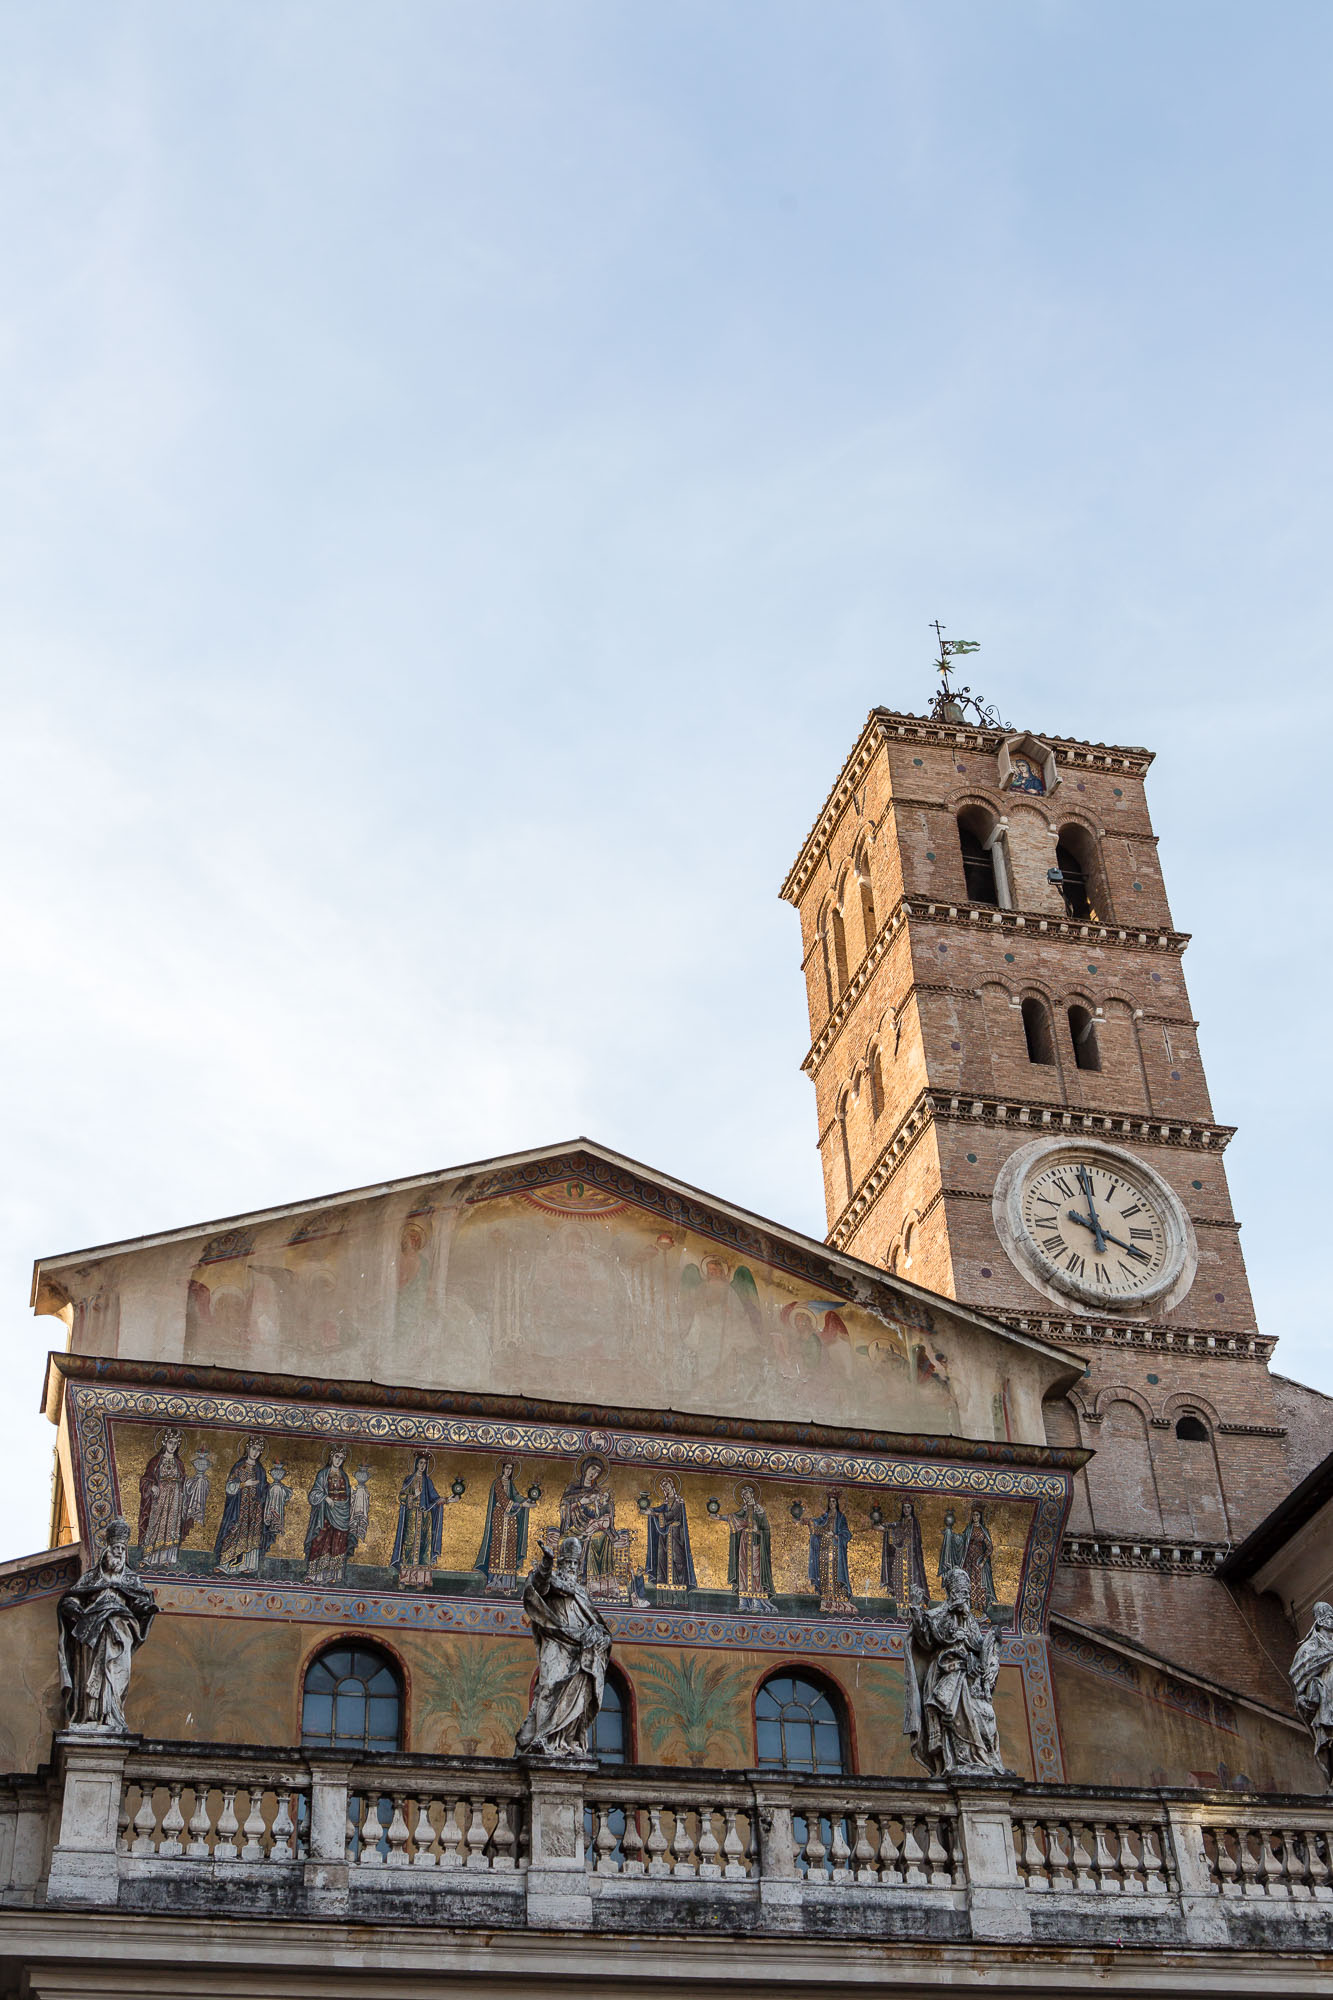 Basilica of Santa Maria in Trastevere, taken by Ben Lee, a derbyshire based photographer on his trip to Rome.